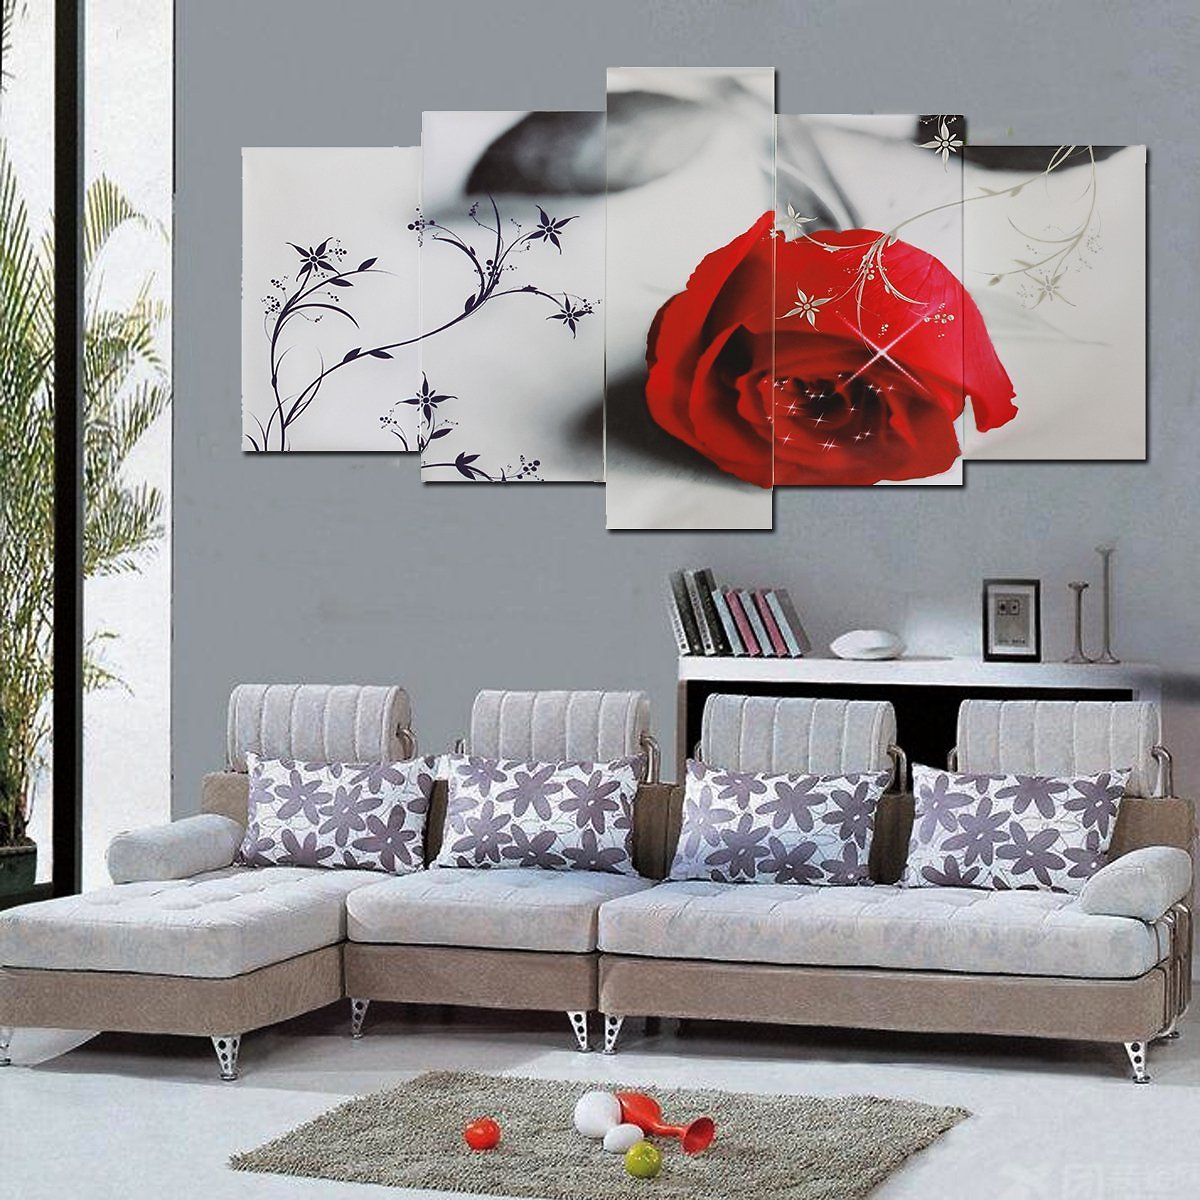 Unframed-Living-Room-Adornment-Picture-Red-Tree-Canvas-Print-Home-Wall-Decor-2-art-x-60cm-30cm-2-x-50